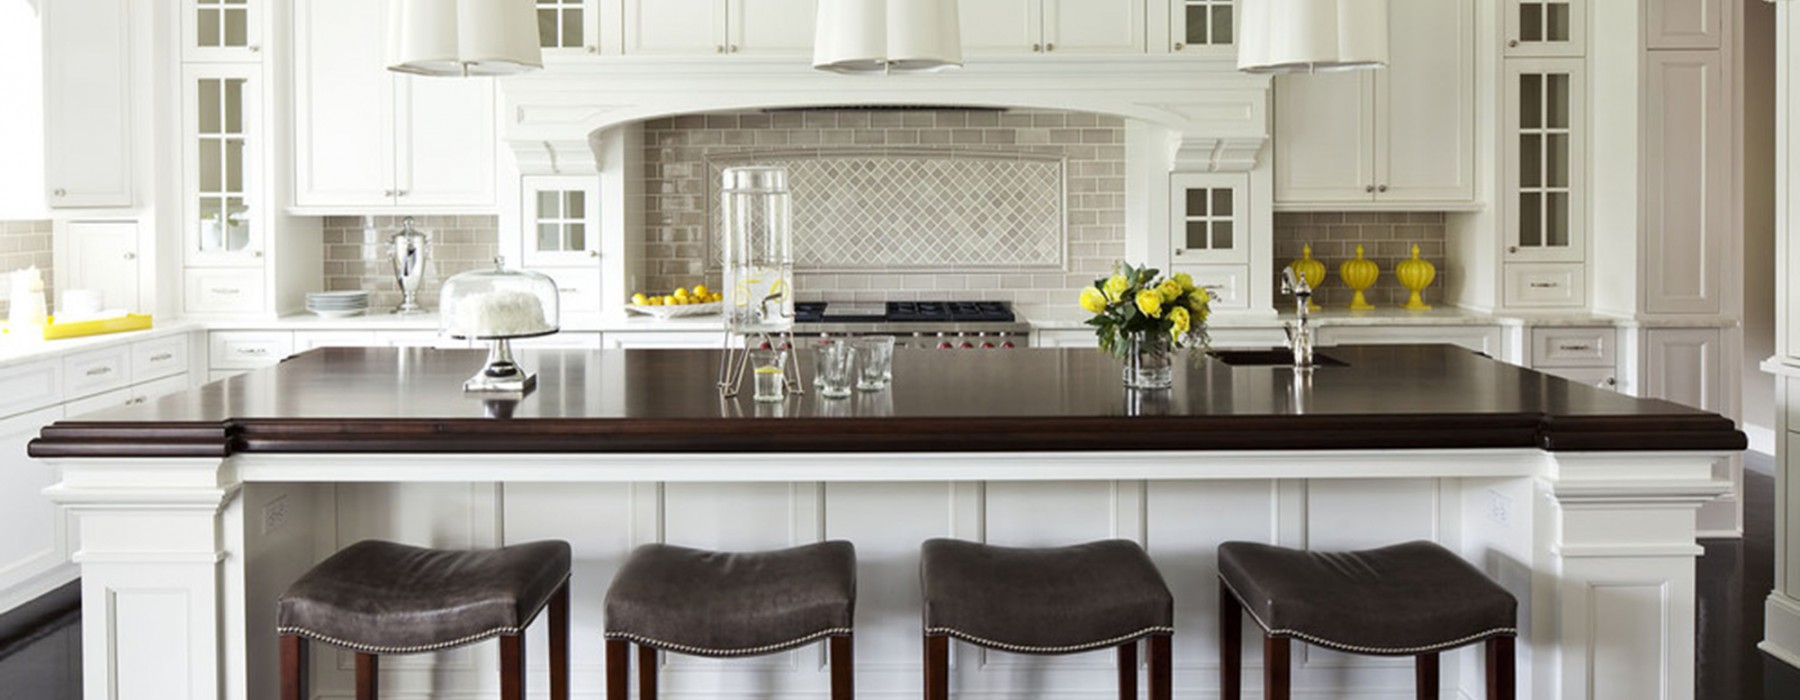 Kitchen Bar Design Pictures Should I Build A Counter Or A Bar In My Kitchen Kathy Kuo Blog